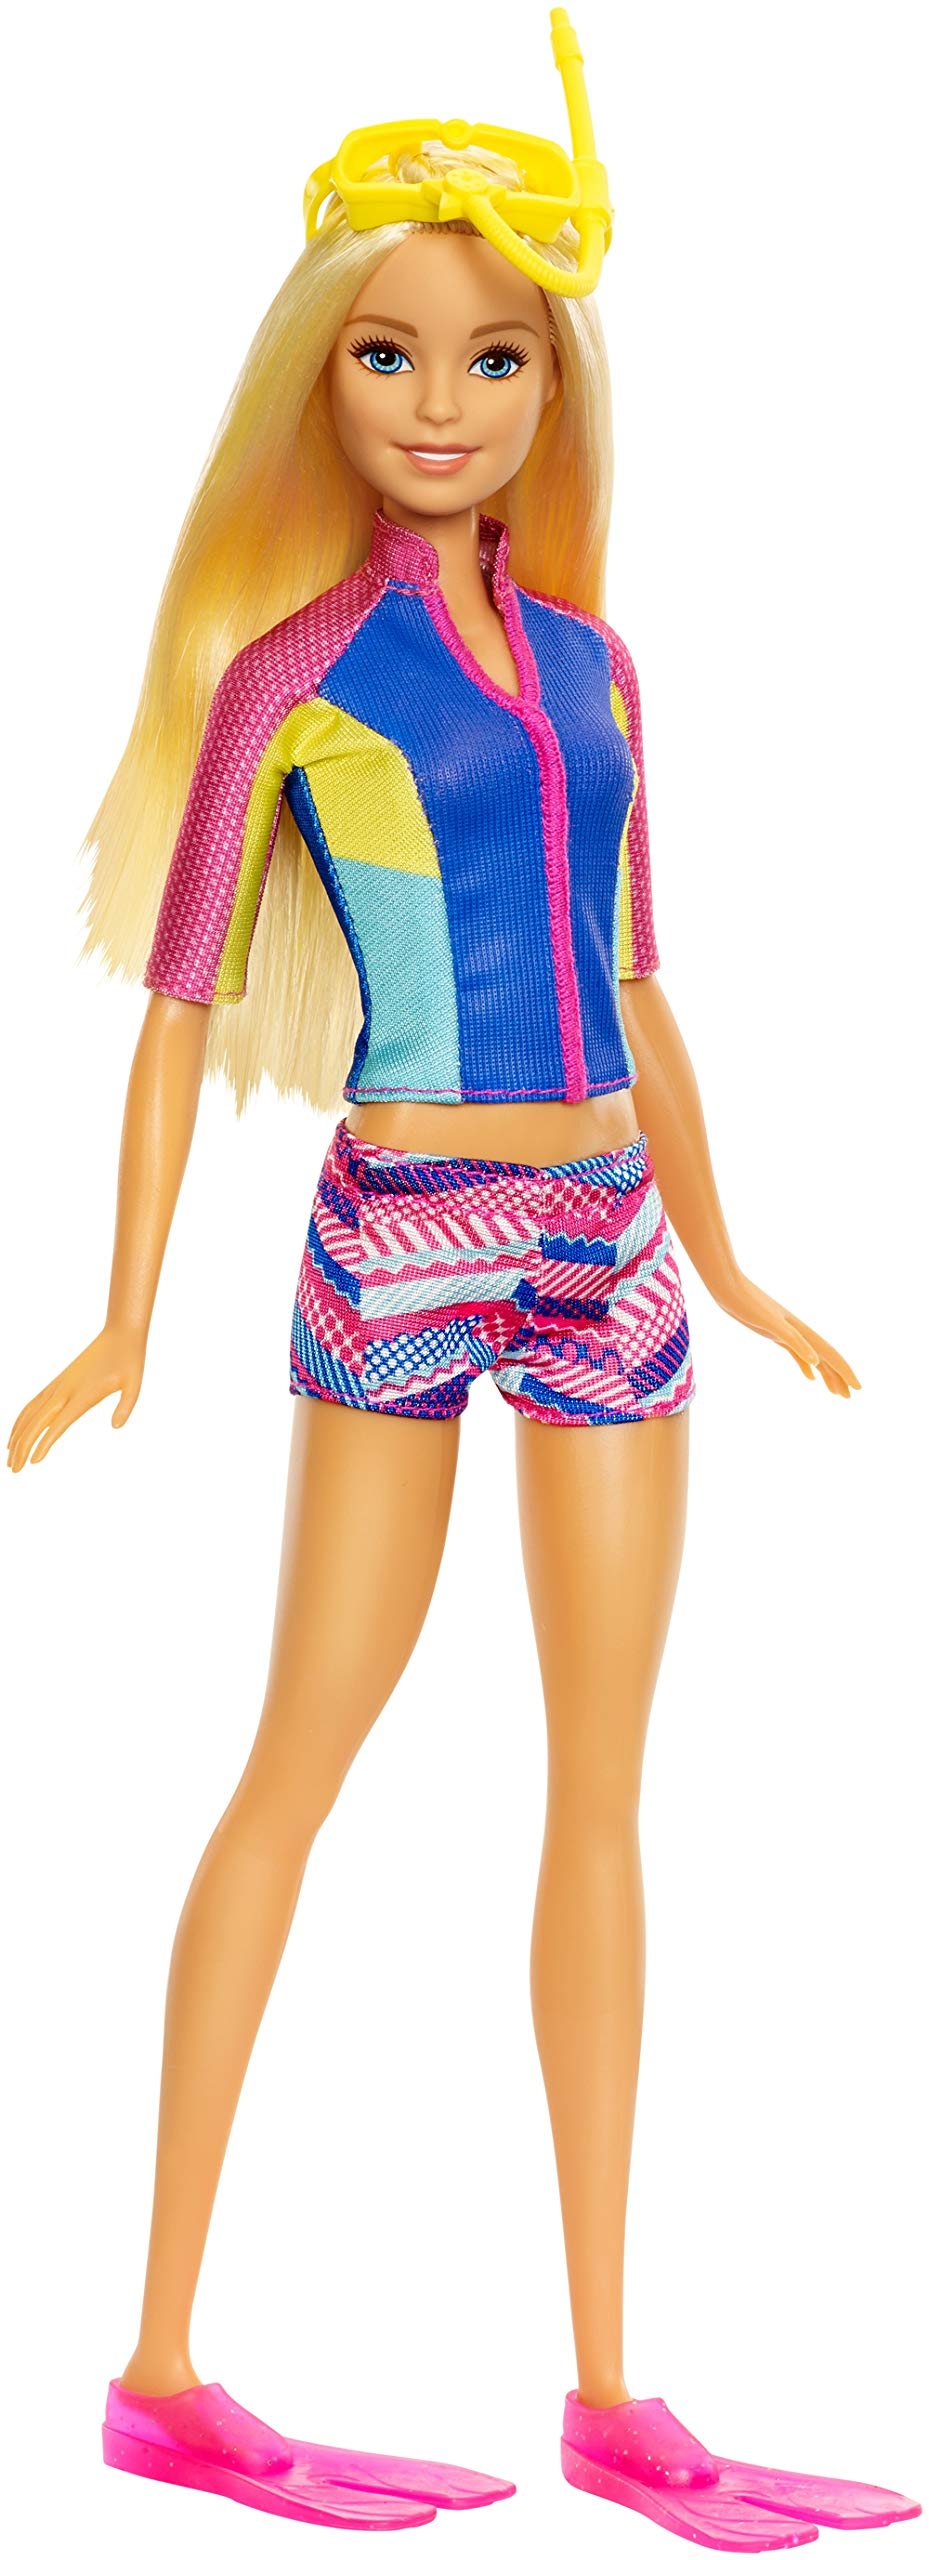 Barbie Doll with Color-Change Top, Puppy Squirt Toy and Dolphin with Sounds